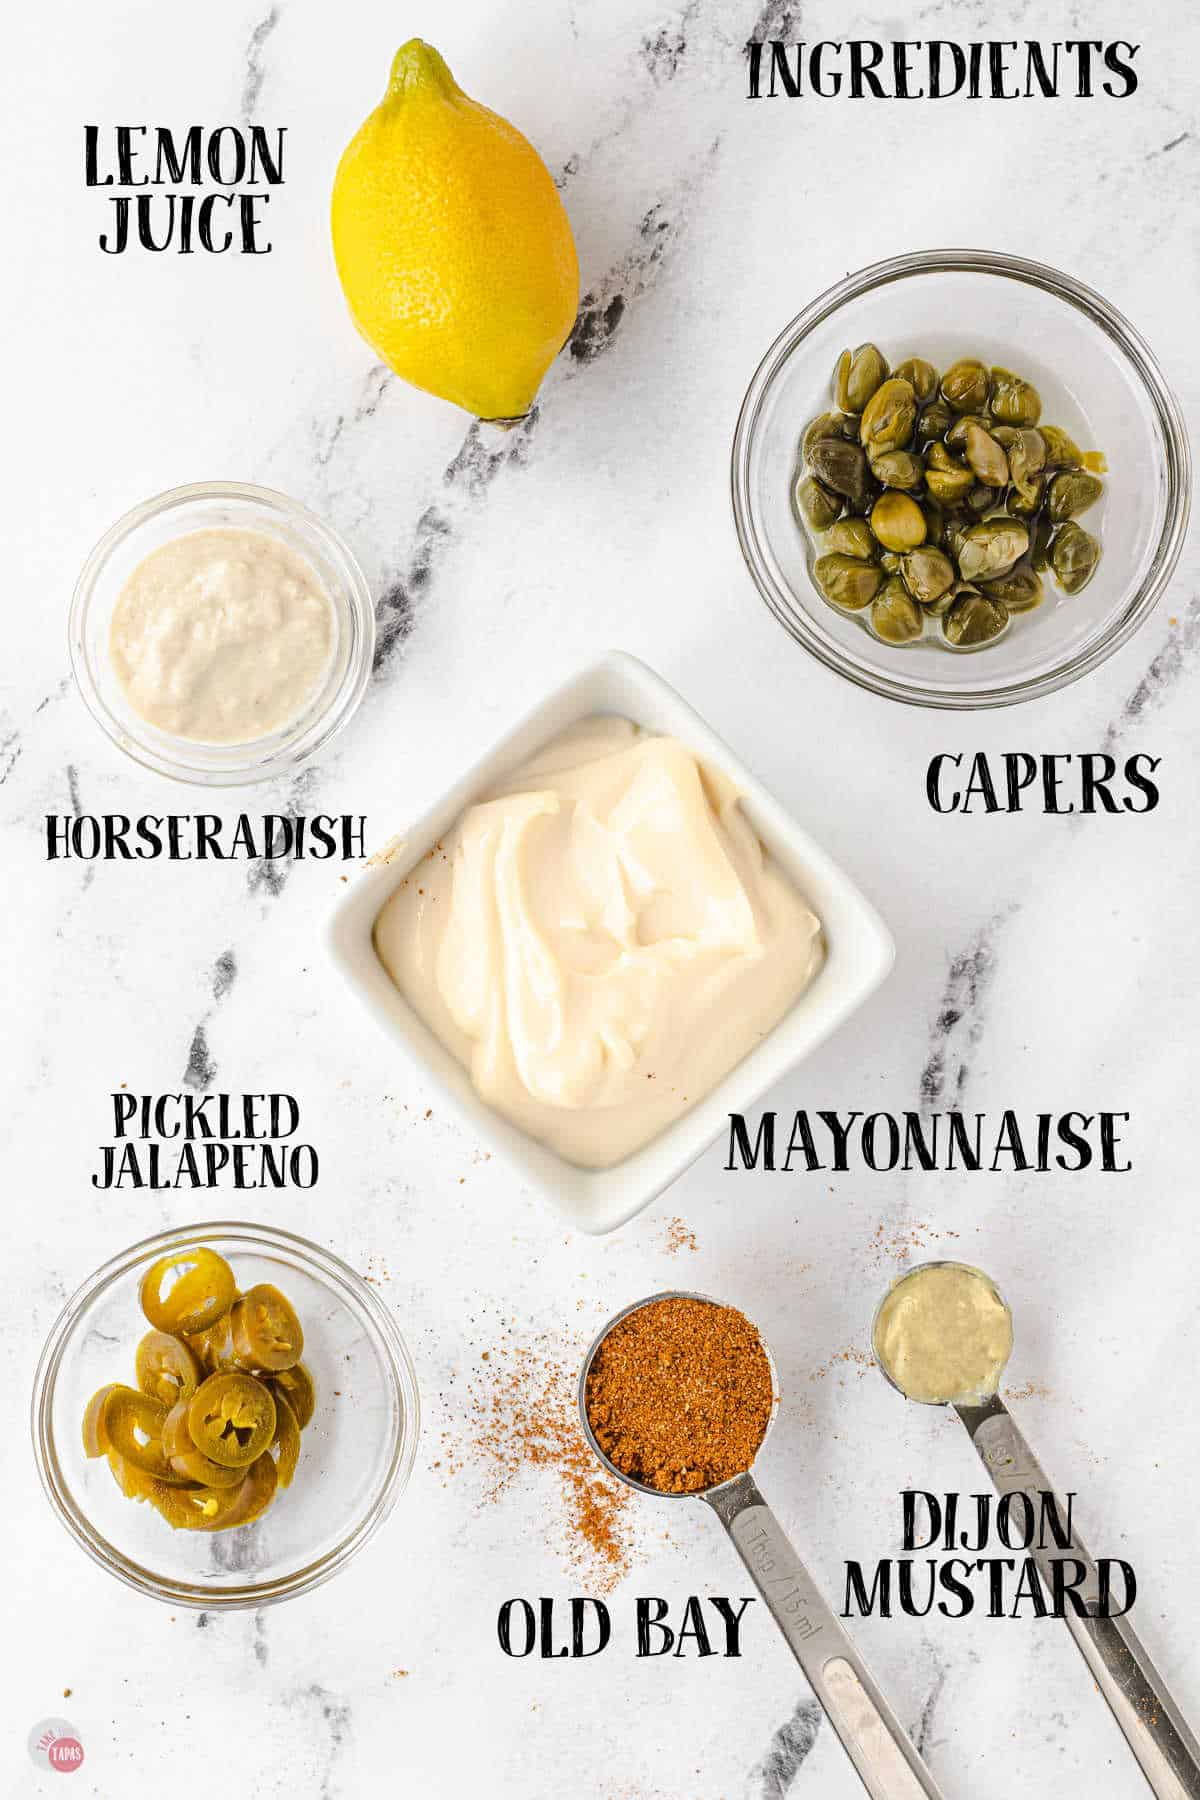 labeled picture of tartar sauce ingredients